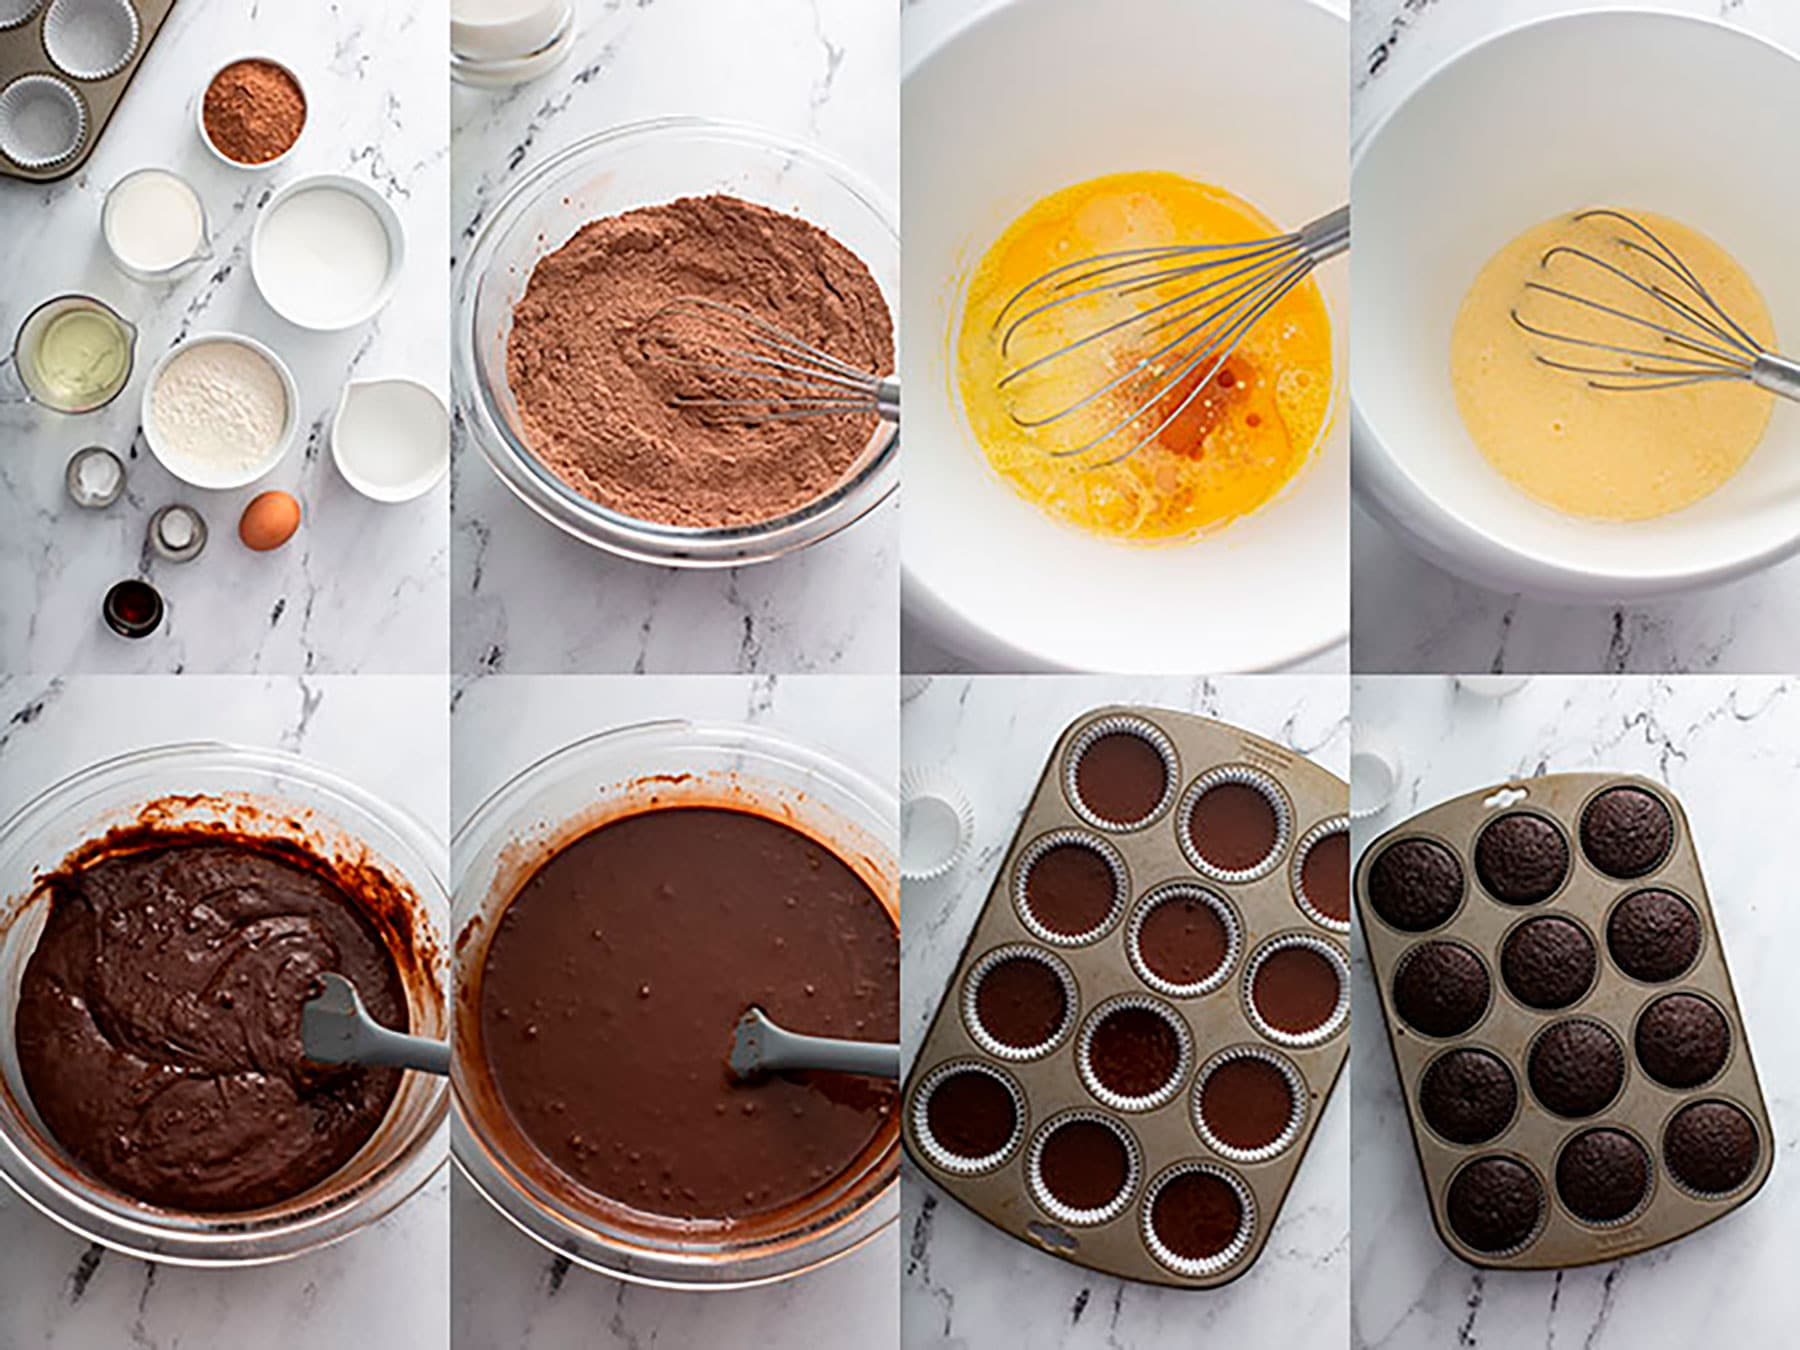 Step by step photos on how to make chocolate cupcakes